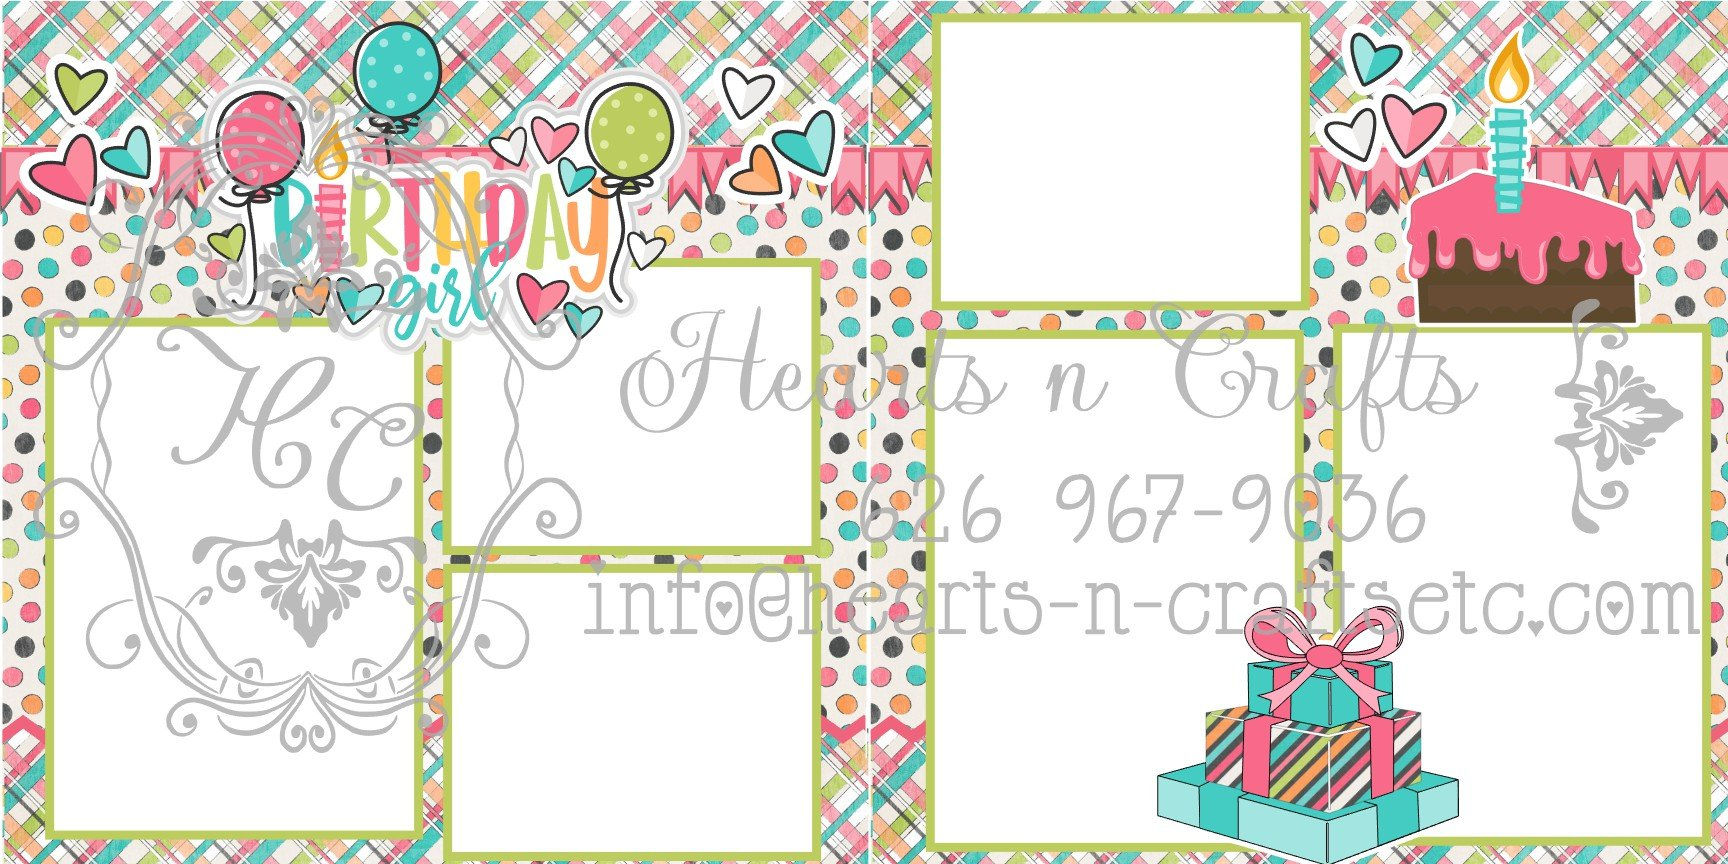 Birthday Girl 2 Page Layout